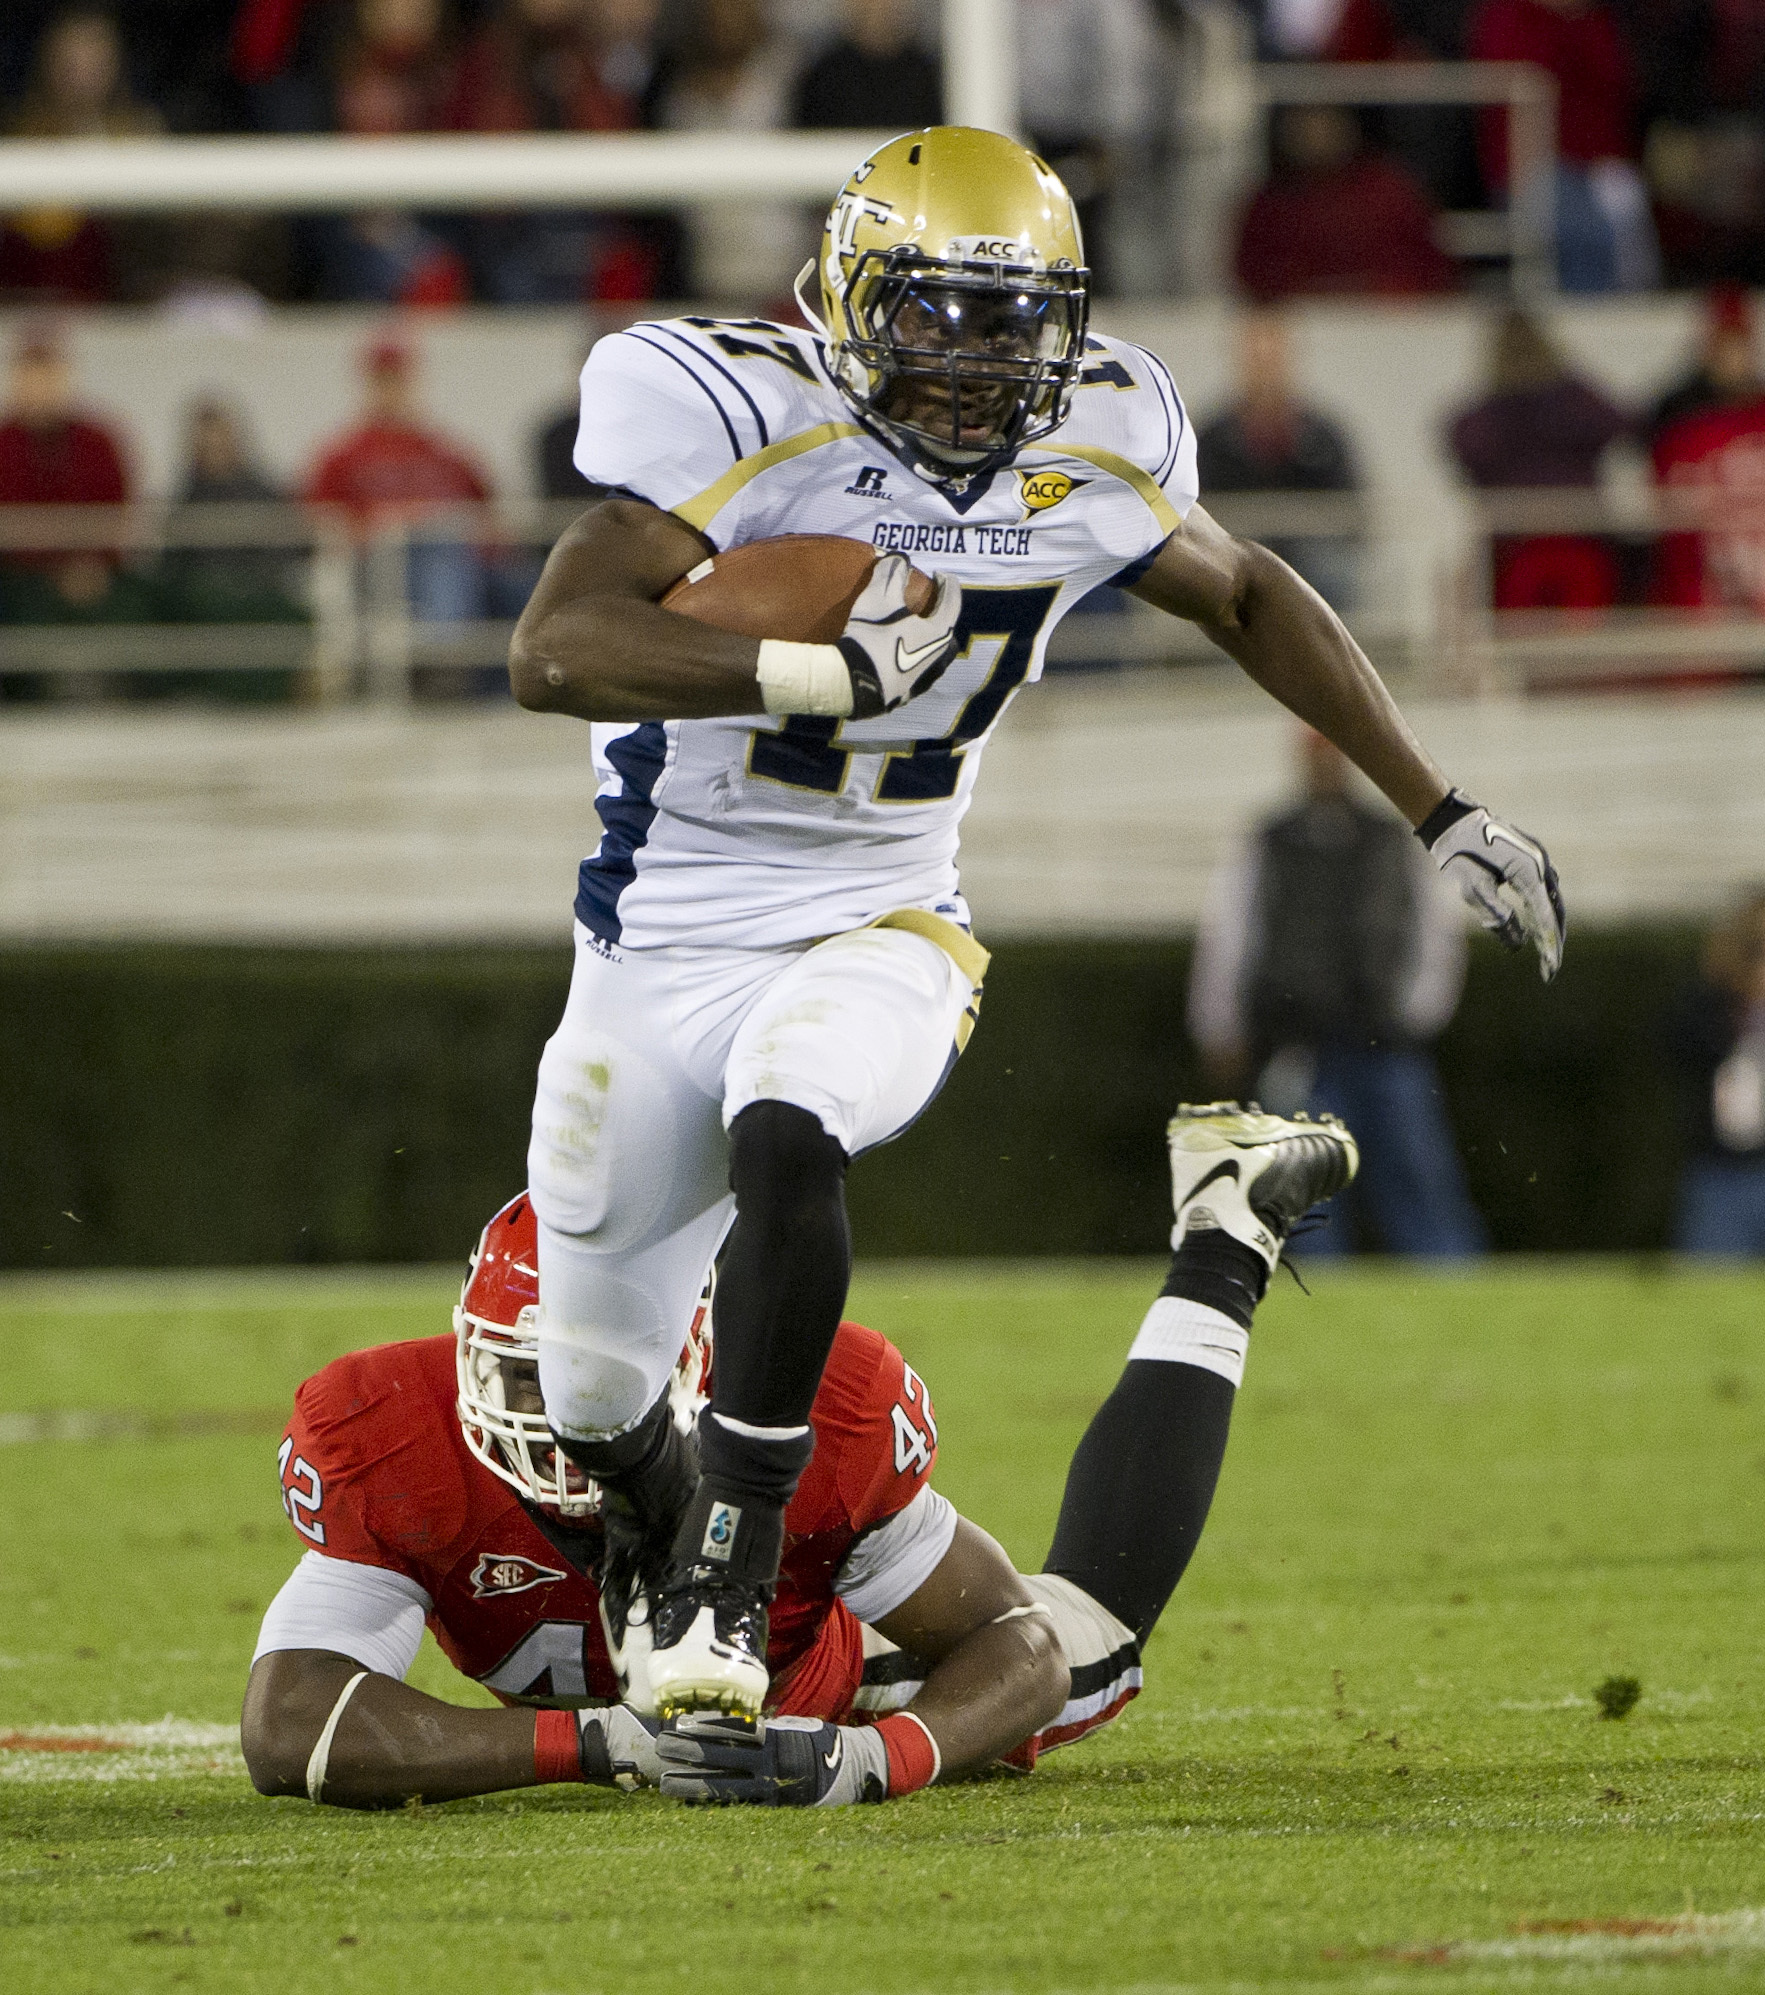 Georgia Tech running back Orwin Smith (17) slips past the grasp of Georgia linebacker Cory Campbell (42). (AP Photo/Rich Addicks)